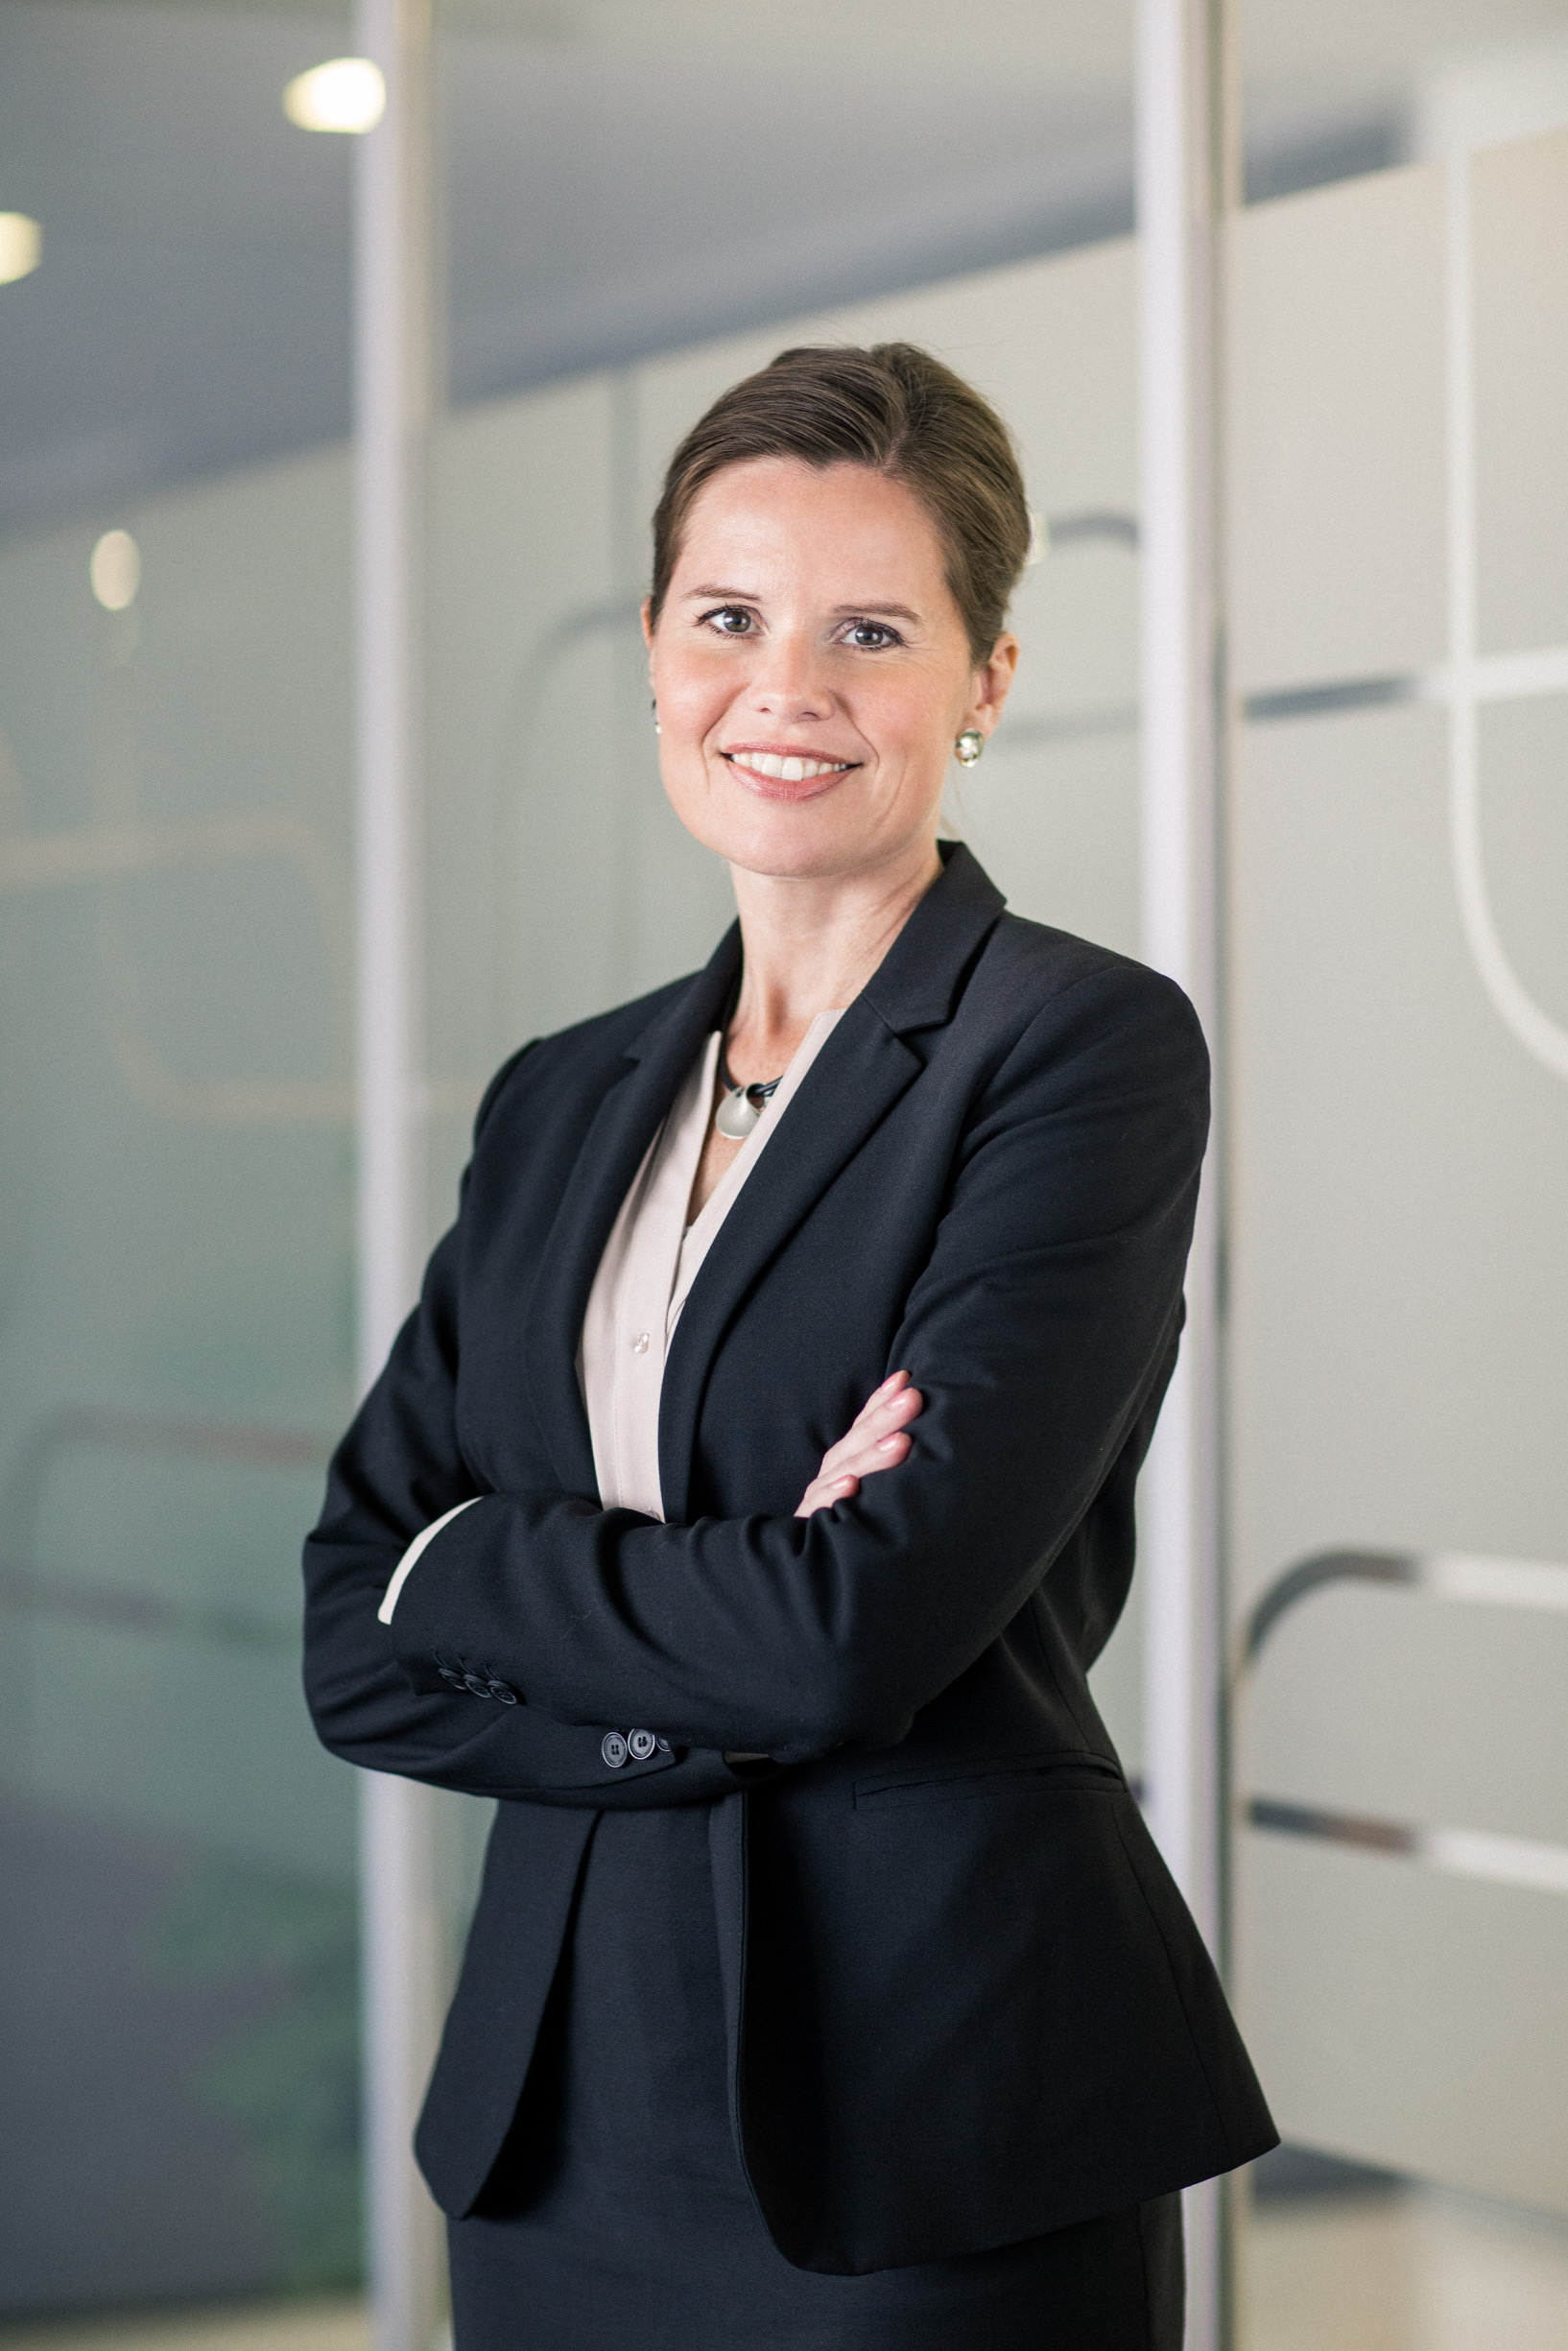 Camilla Sylvest, executive vice president, Commercial Strategy & Corporate Affairs